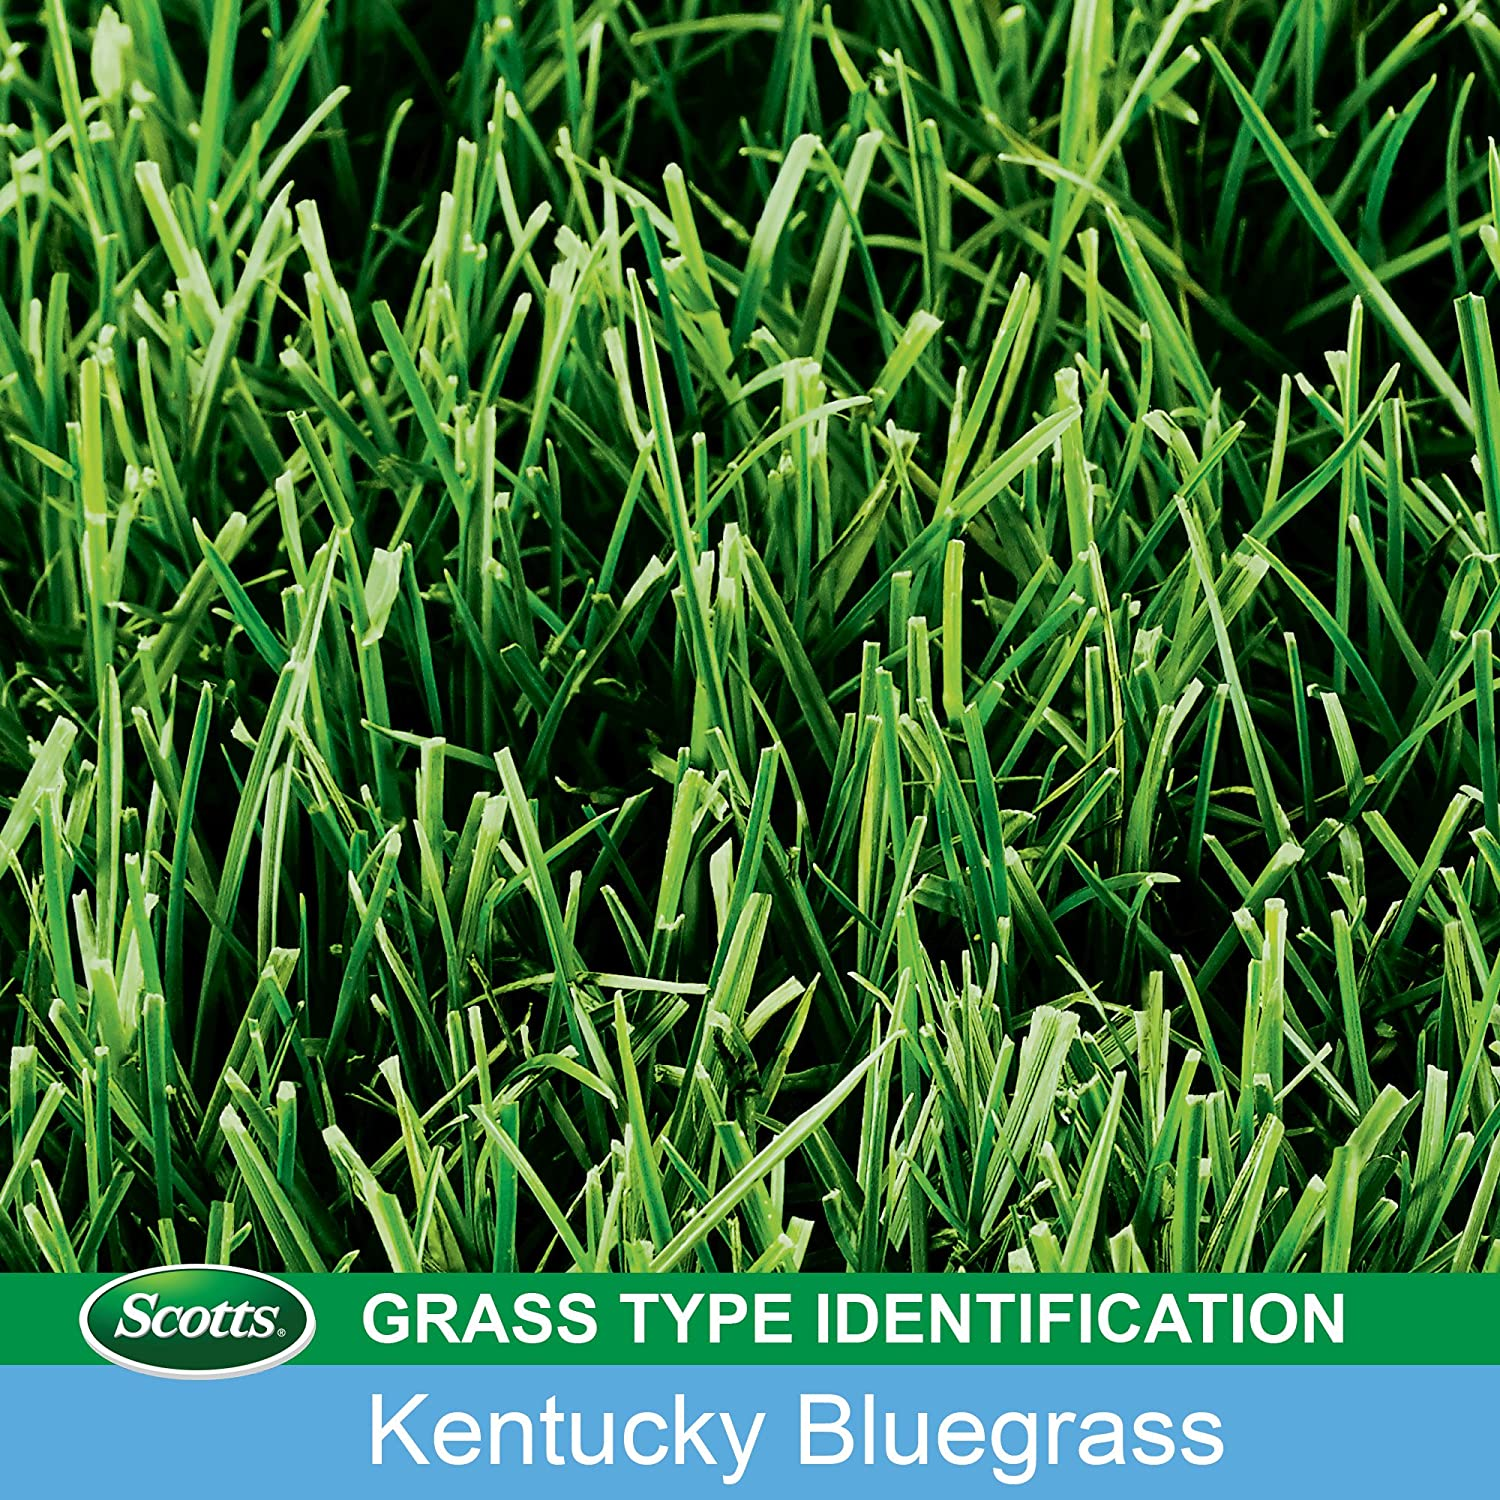 Scotts Turf Builder Grass Seed Image 3